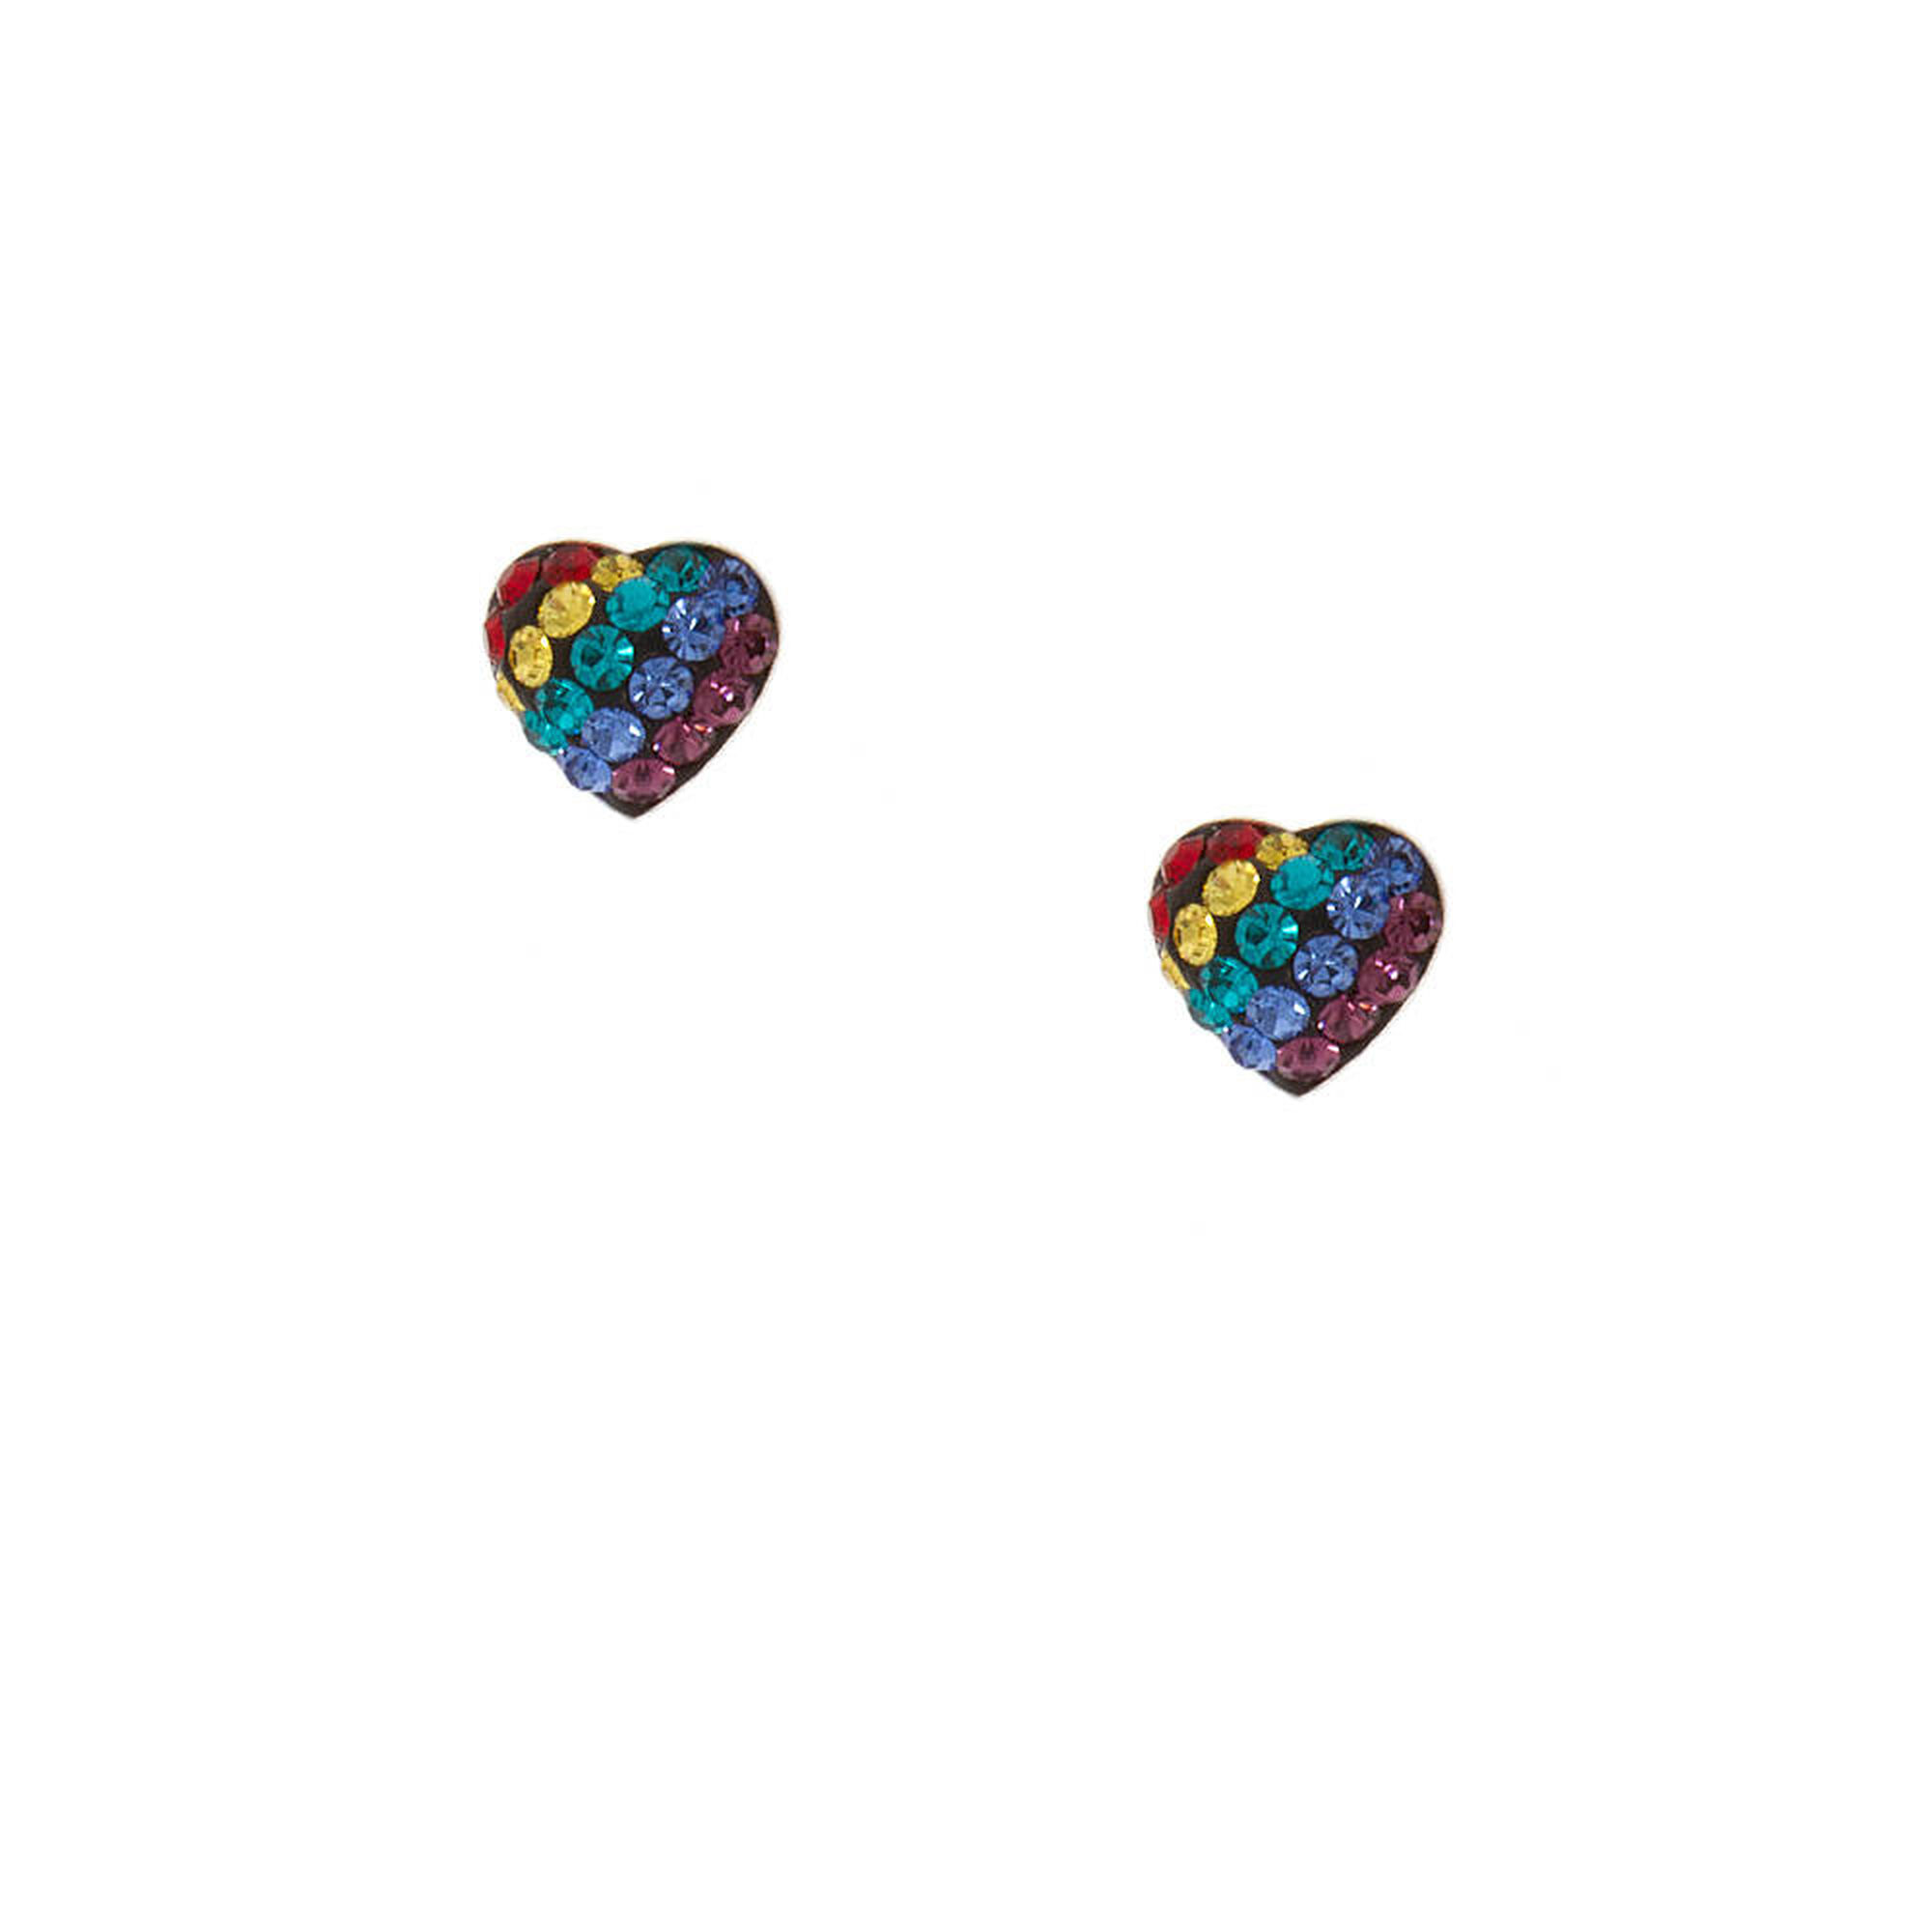 ehsani s melody lonny lonnys products earrings rainbow